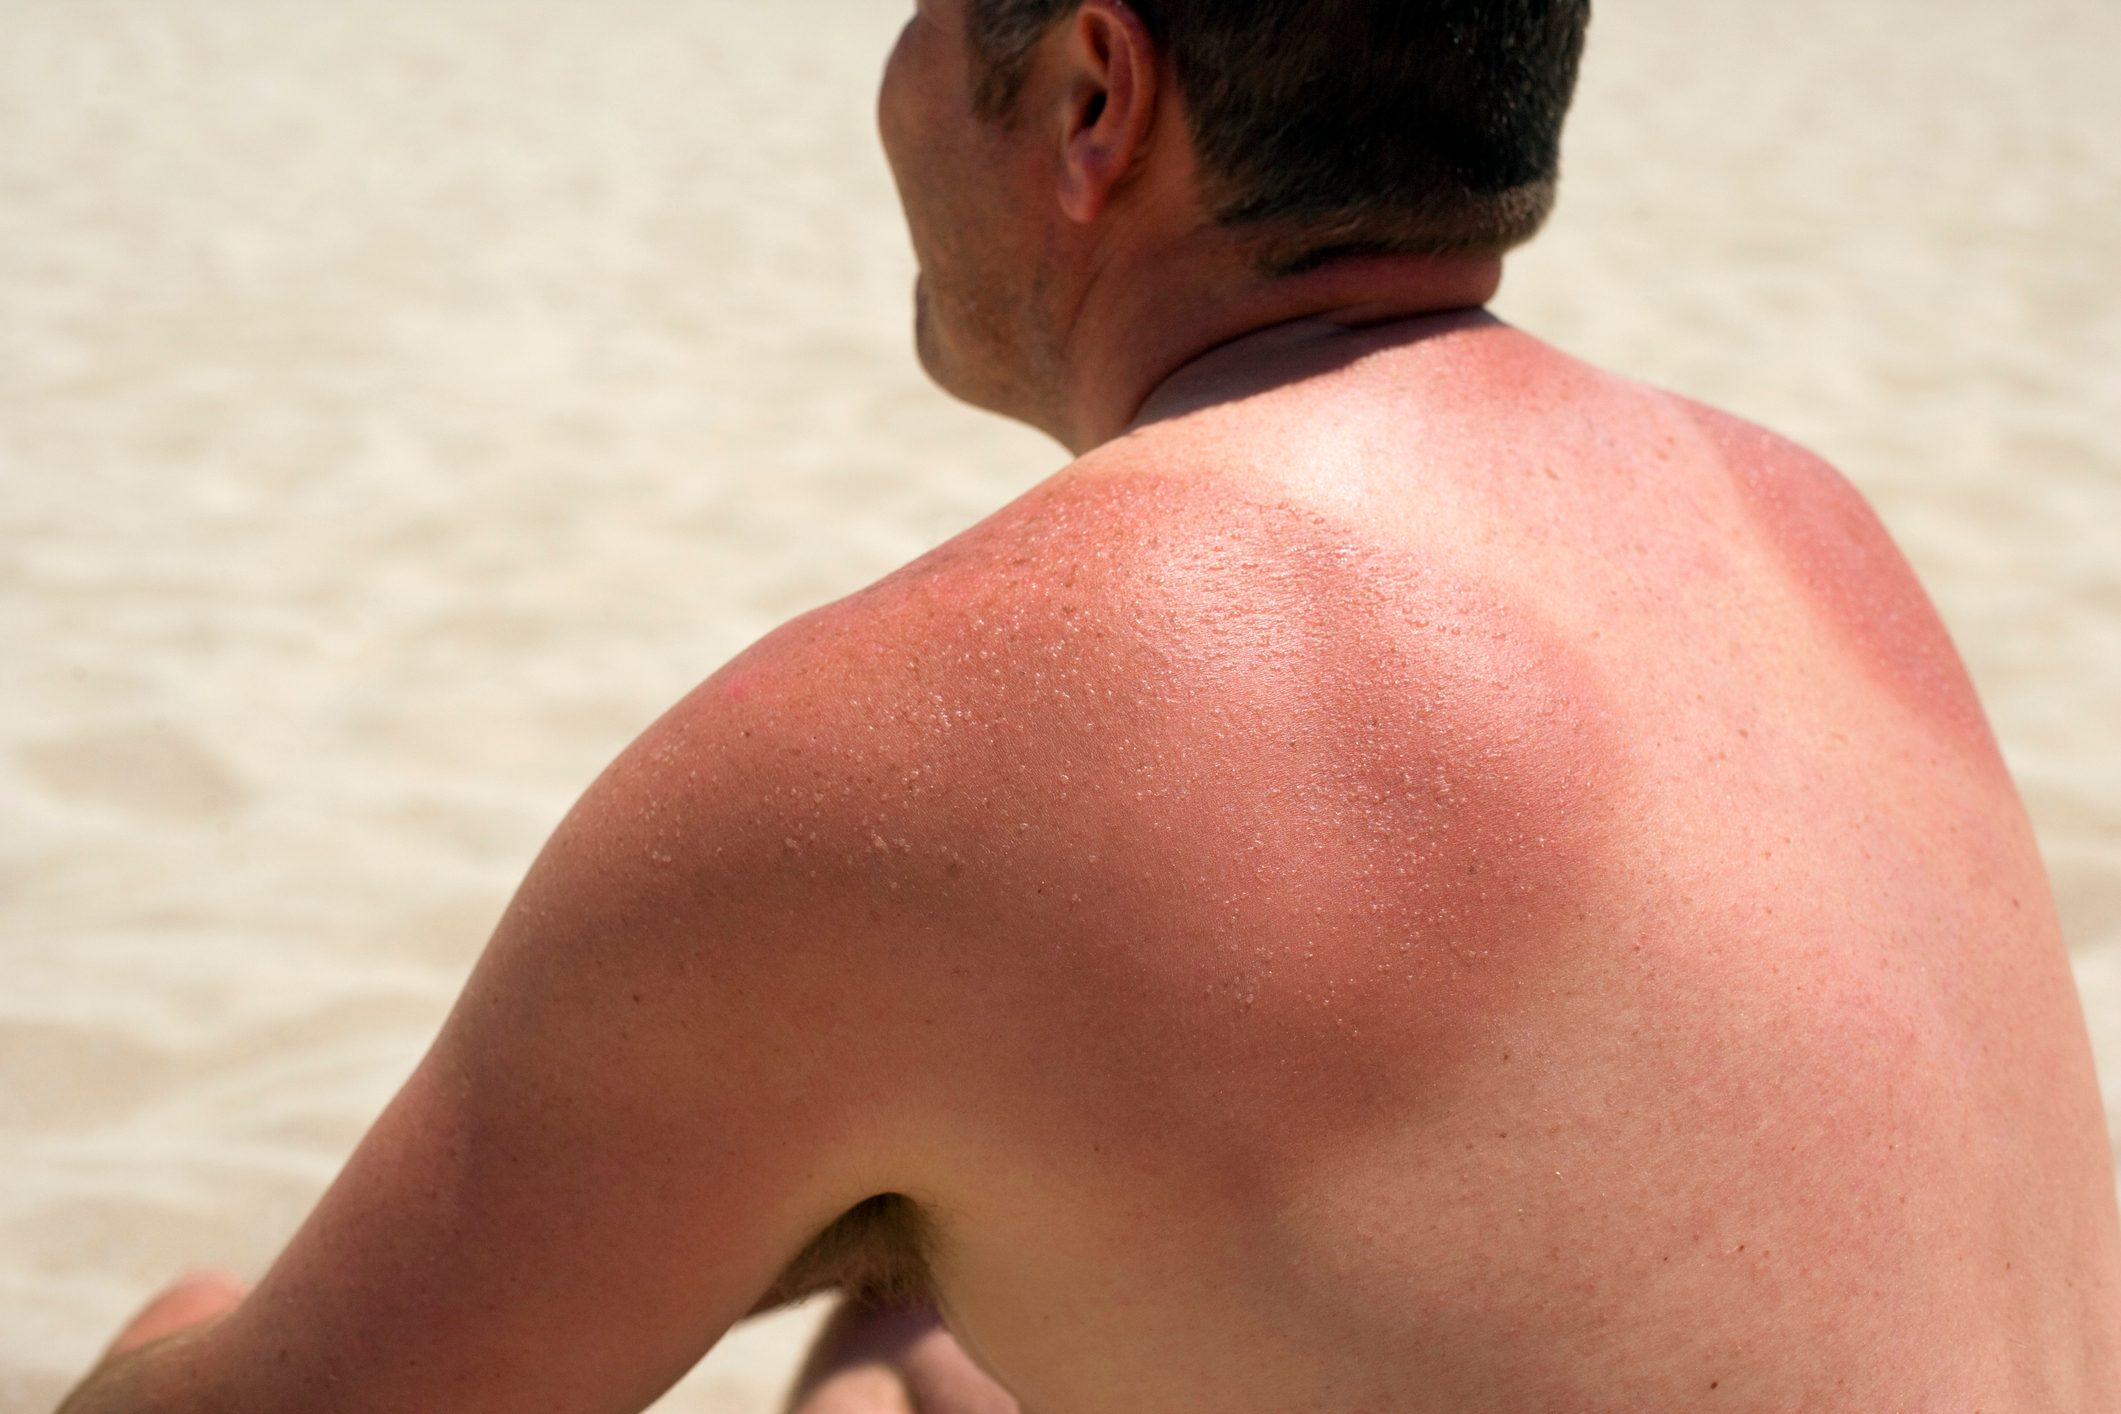 man sitting on beach with sunburn on his back